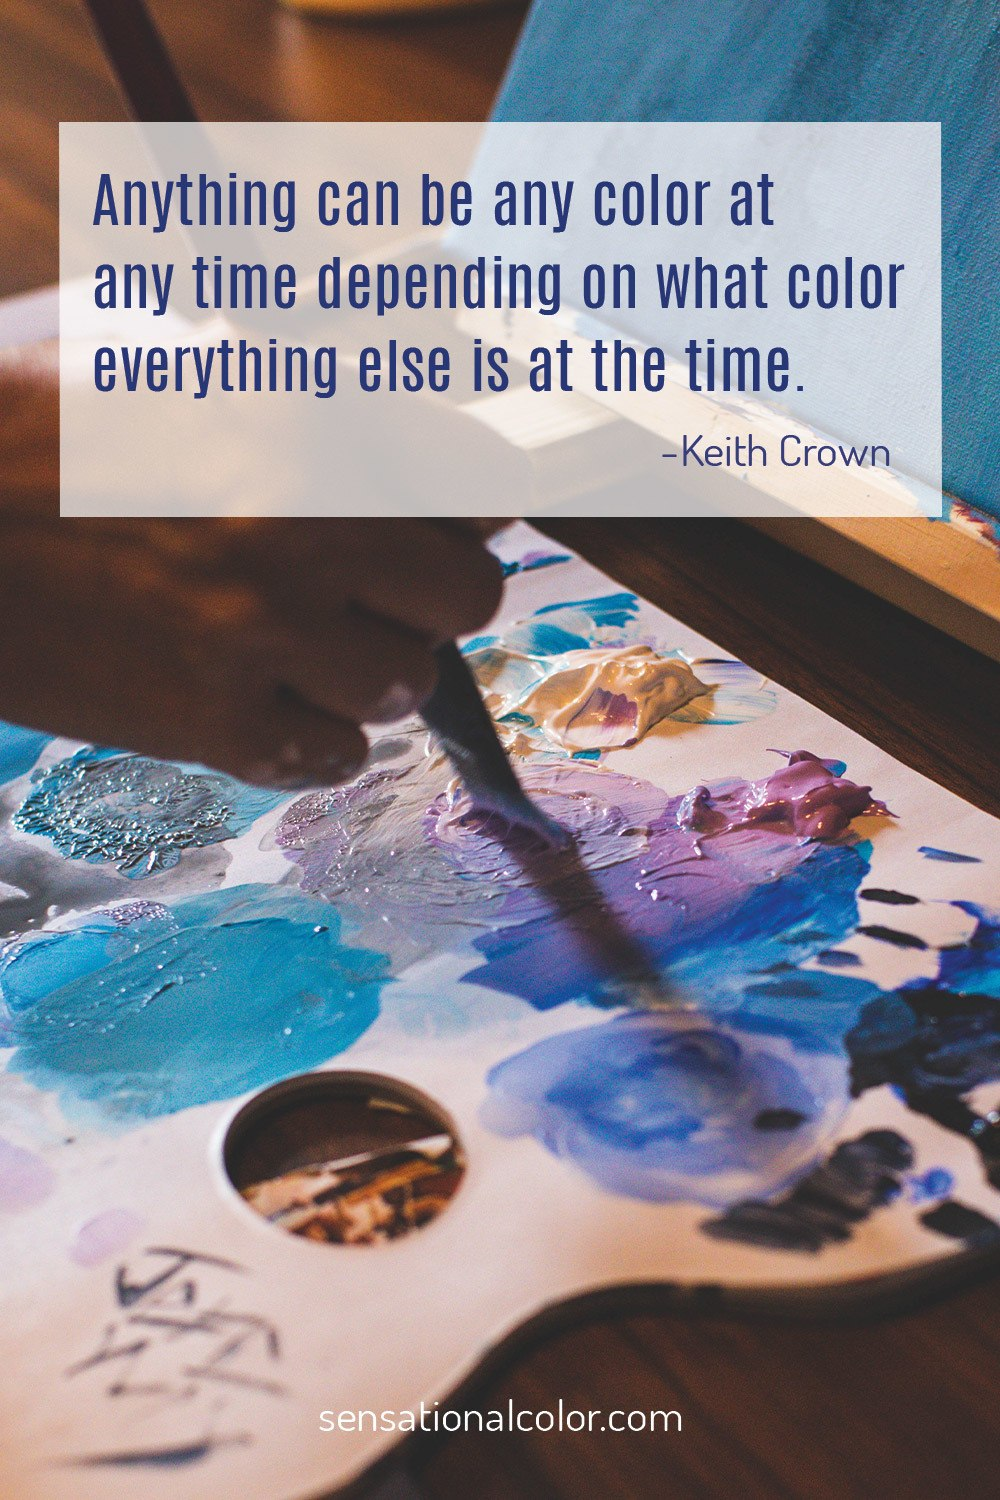 """Anything can be any color at any time depending on what color everything else is at the time."" - Keith Crown"